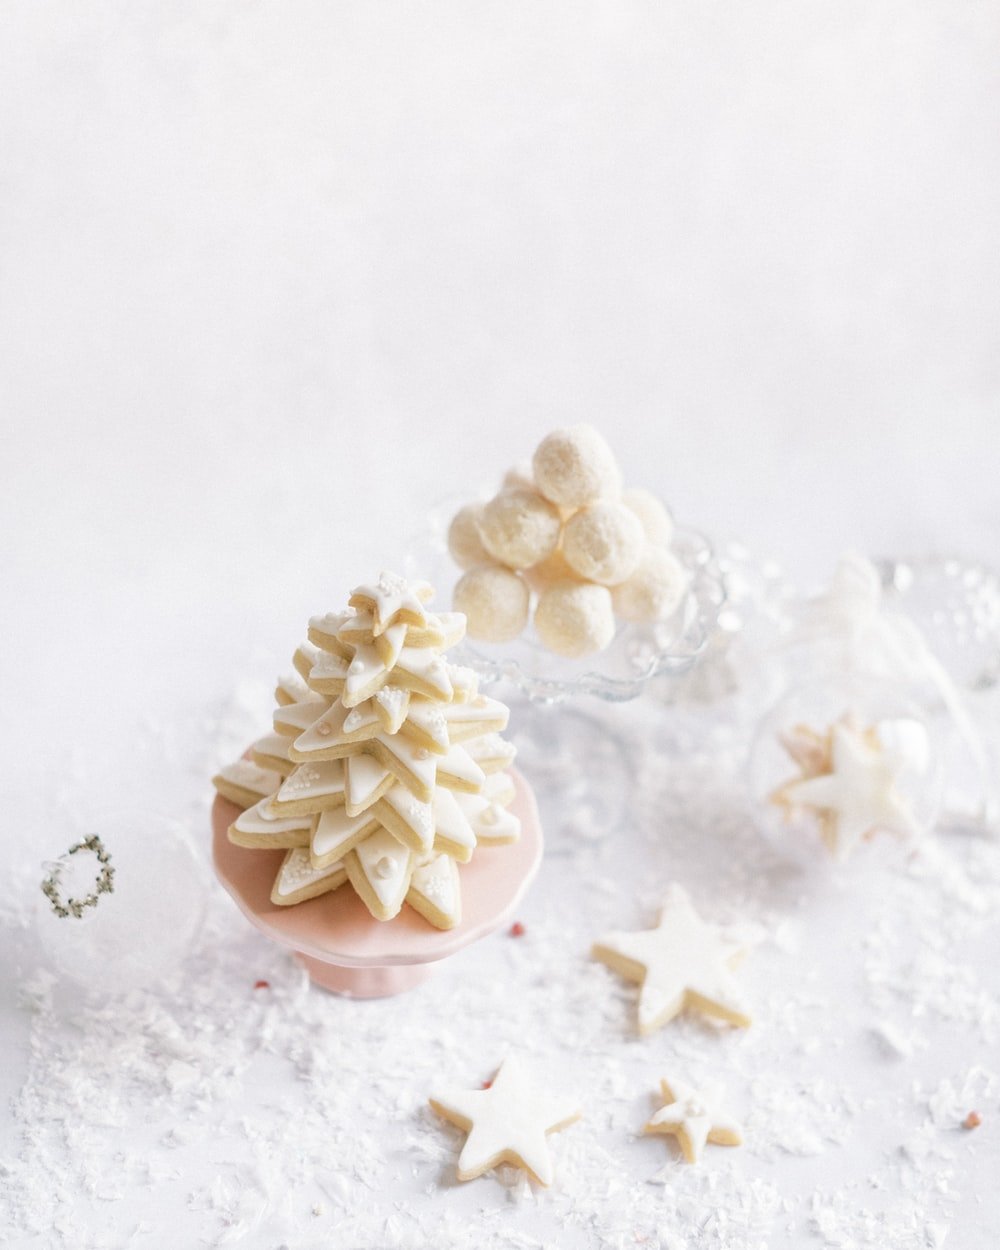 white chocolate truffles made with organic cocoa butter chips